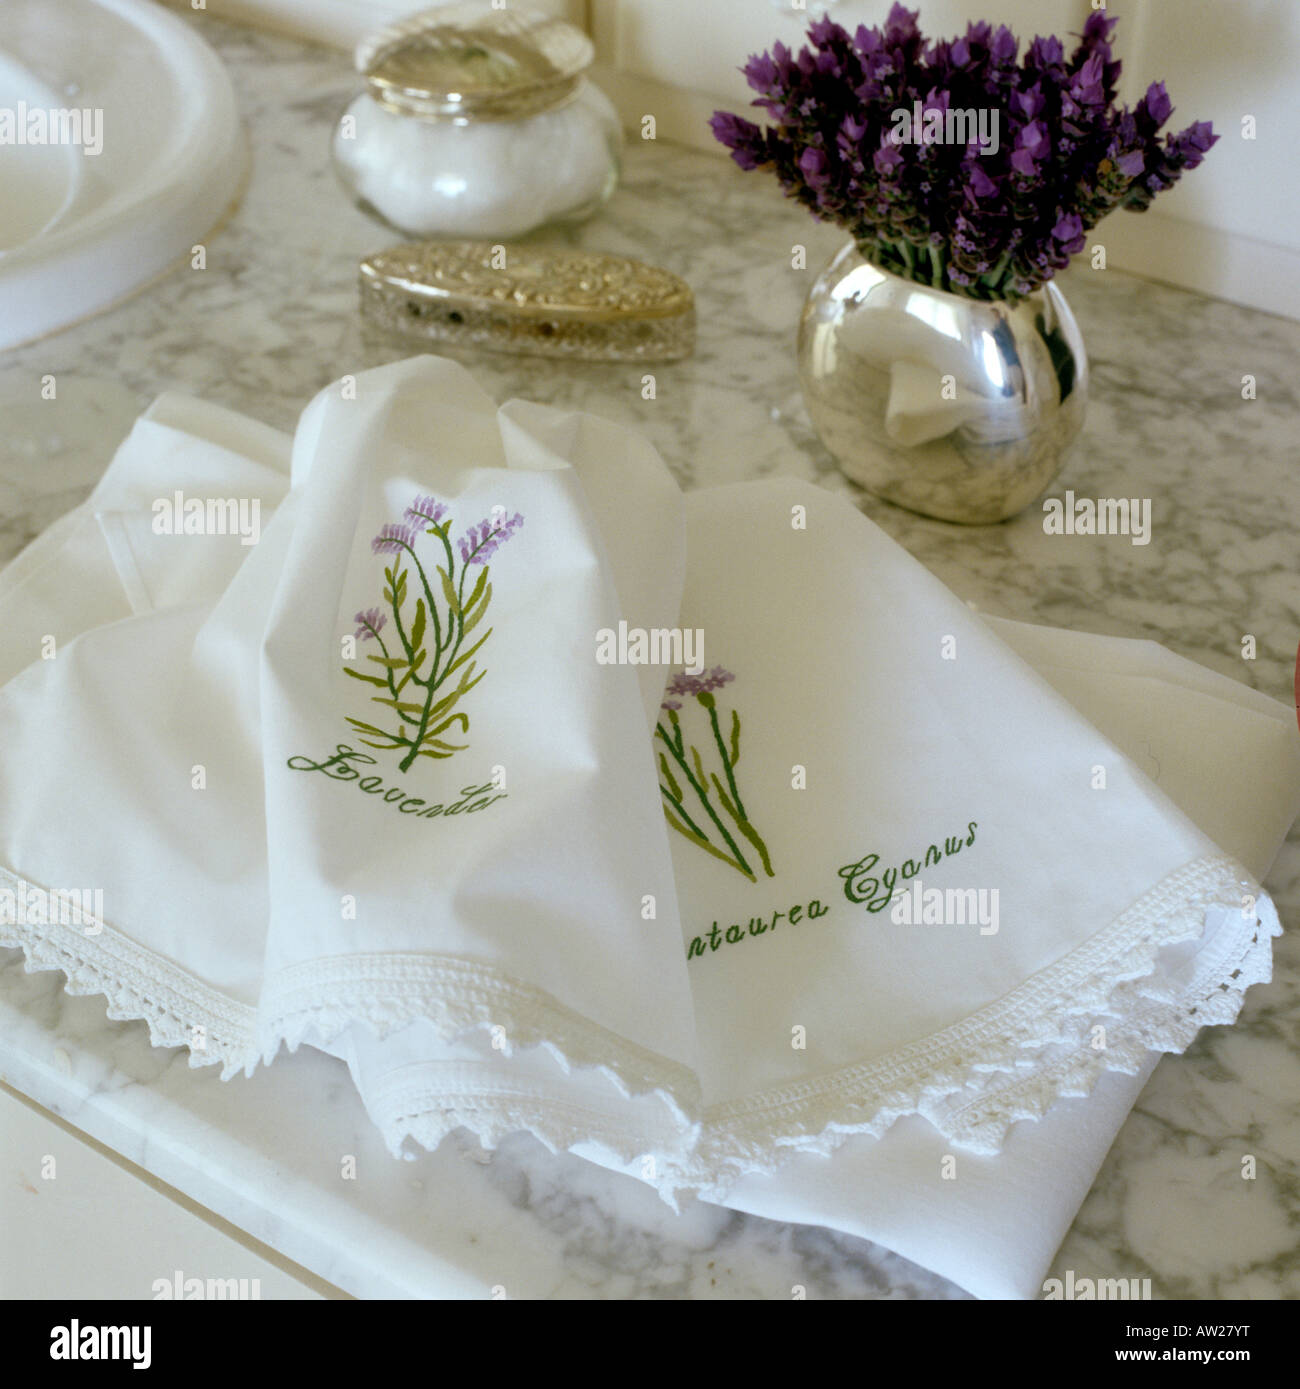 small cotton towels with hand embroidered flower motif on marble surface - Stock Image